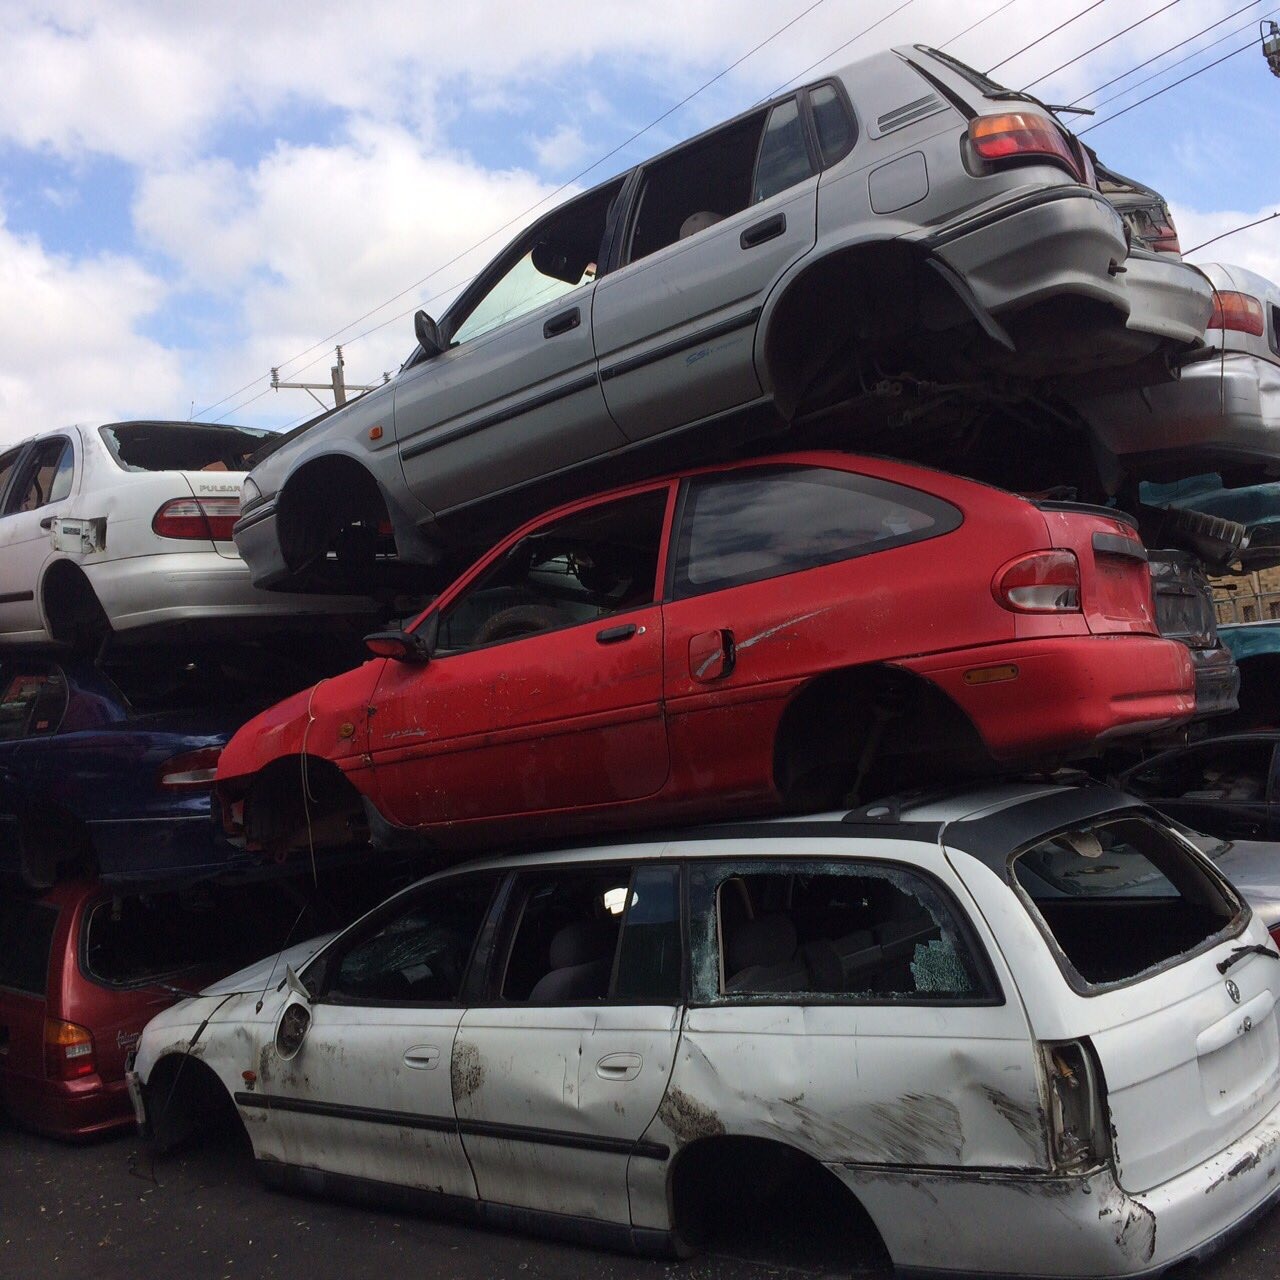 Scrap Metal Archives - Cash For Junk Cars Melbourne | Cash For Car ...